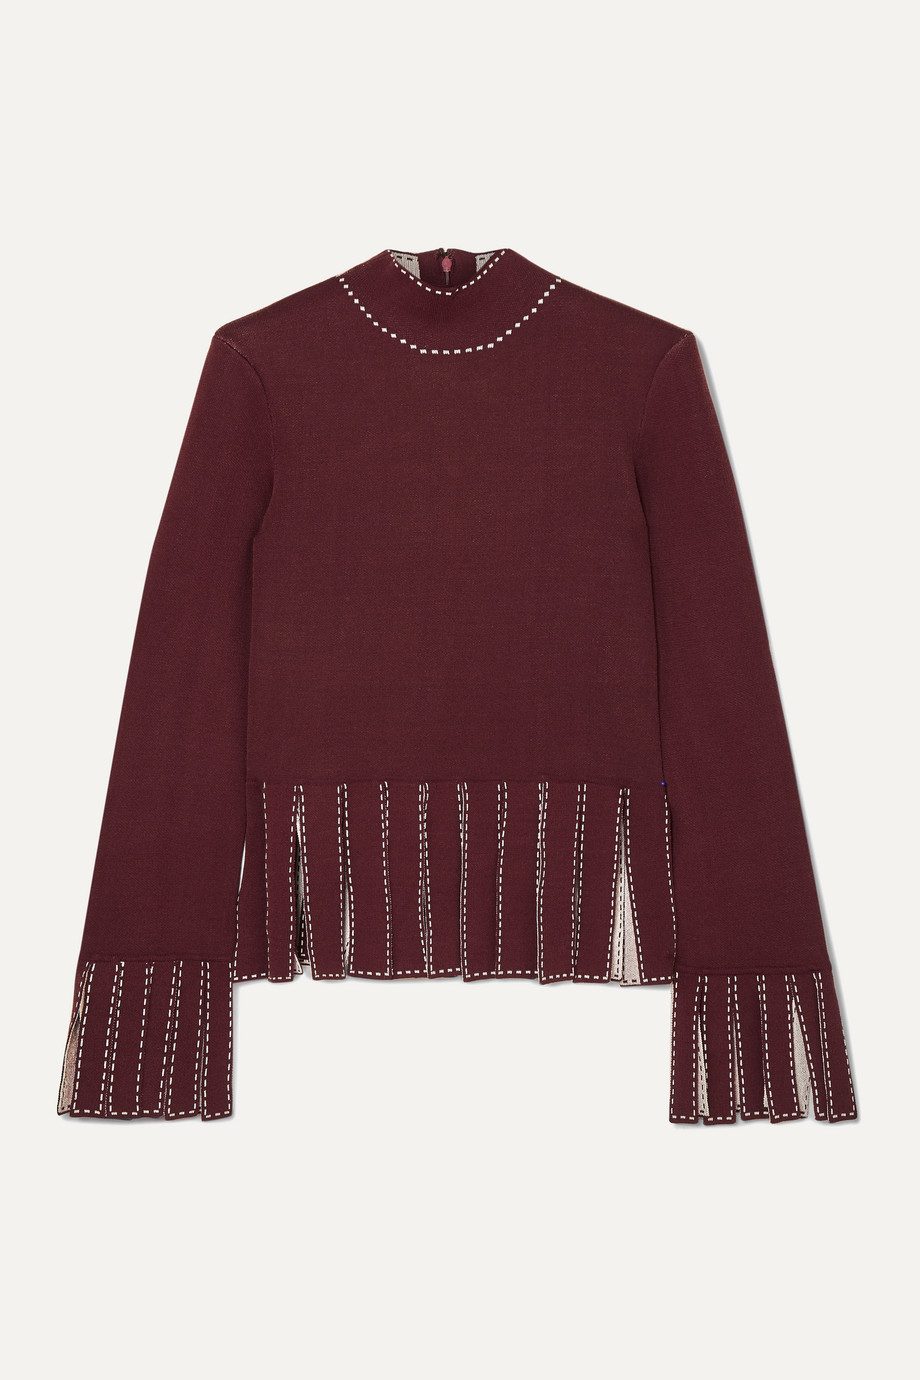 STAUD Mika cropped fringed stretch-knit top